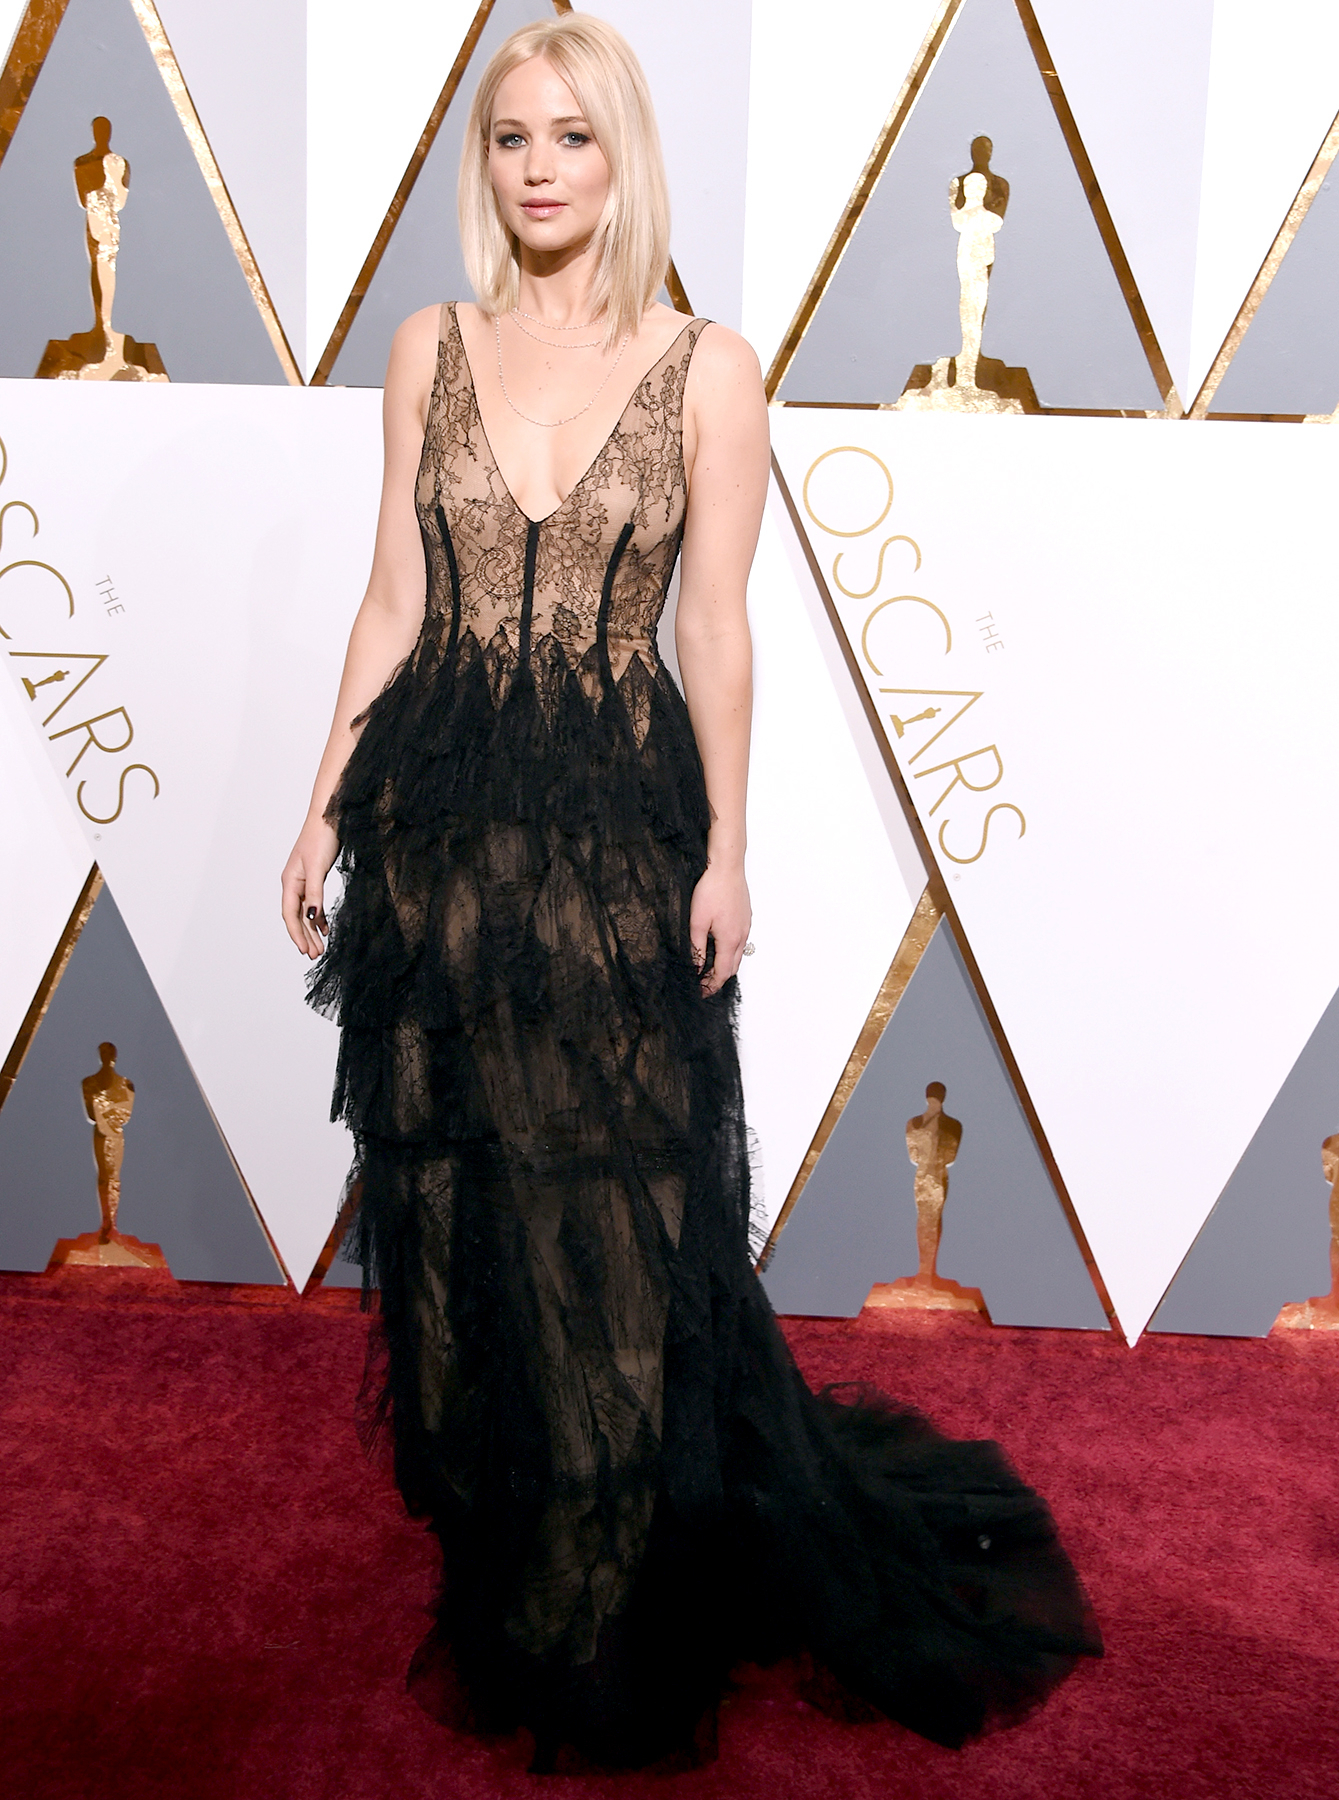 Jennifer Lawrence attends the 88th Annual Academy Awards.